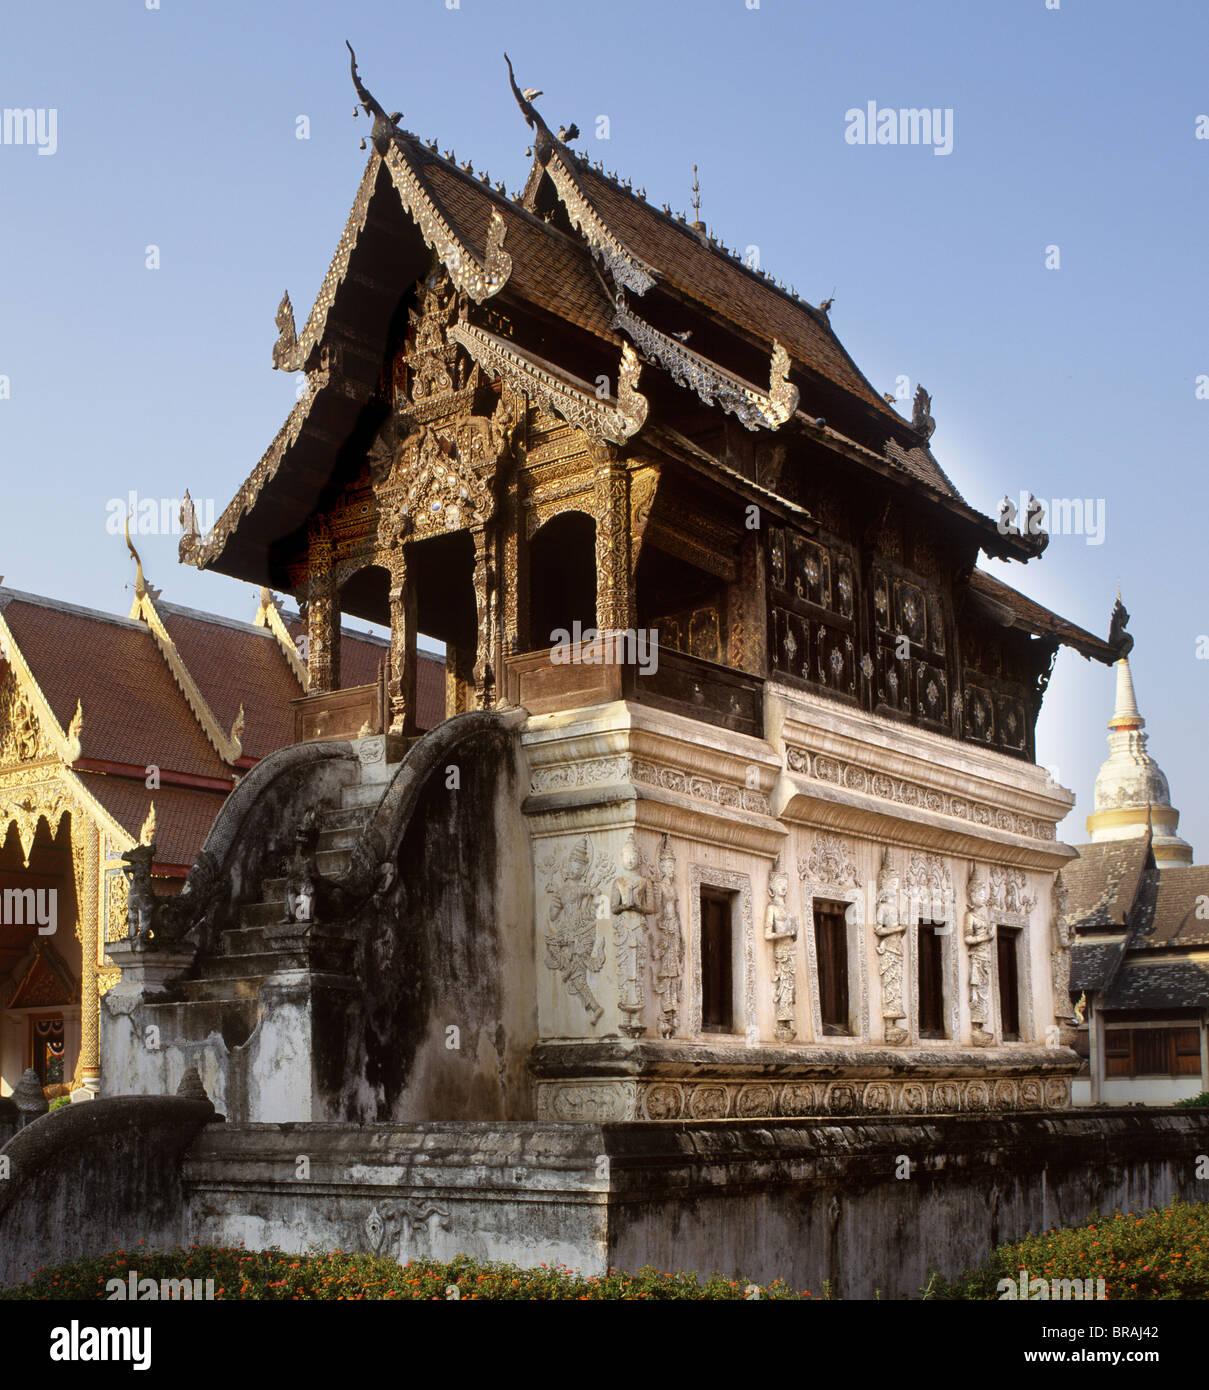 The Manuscript Library of Wat Phra Singh, Chiang Mai, Thailand, Southeast Asia, Asia Stock Photo